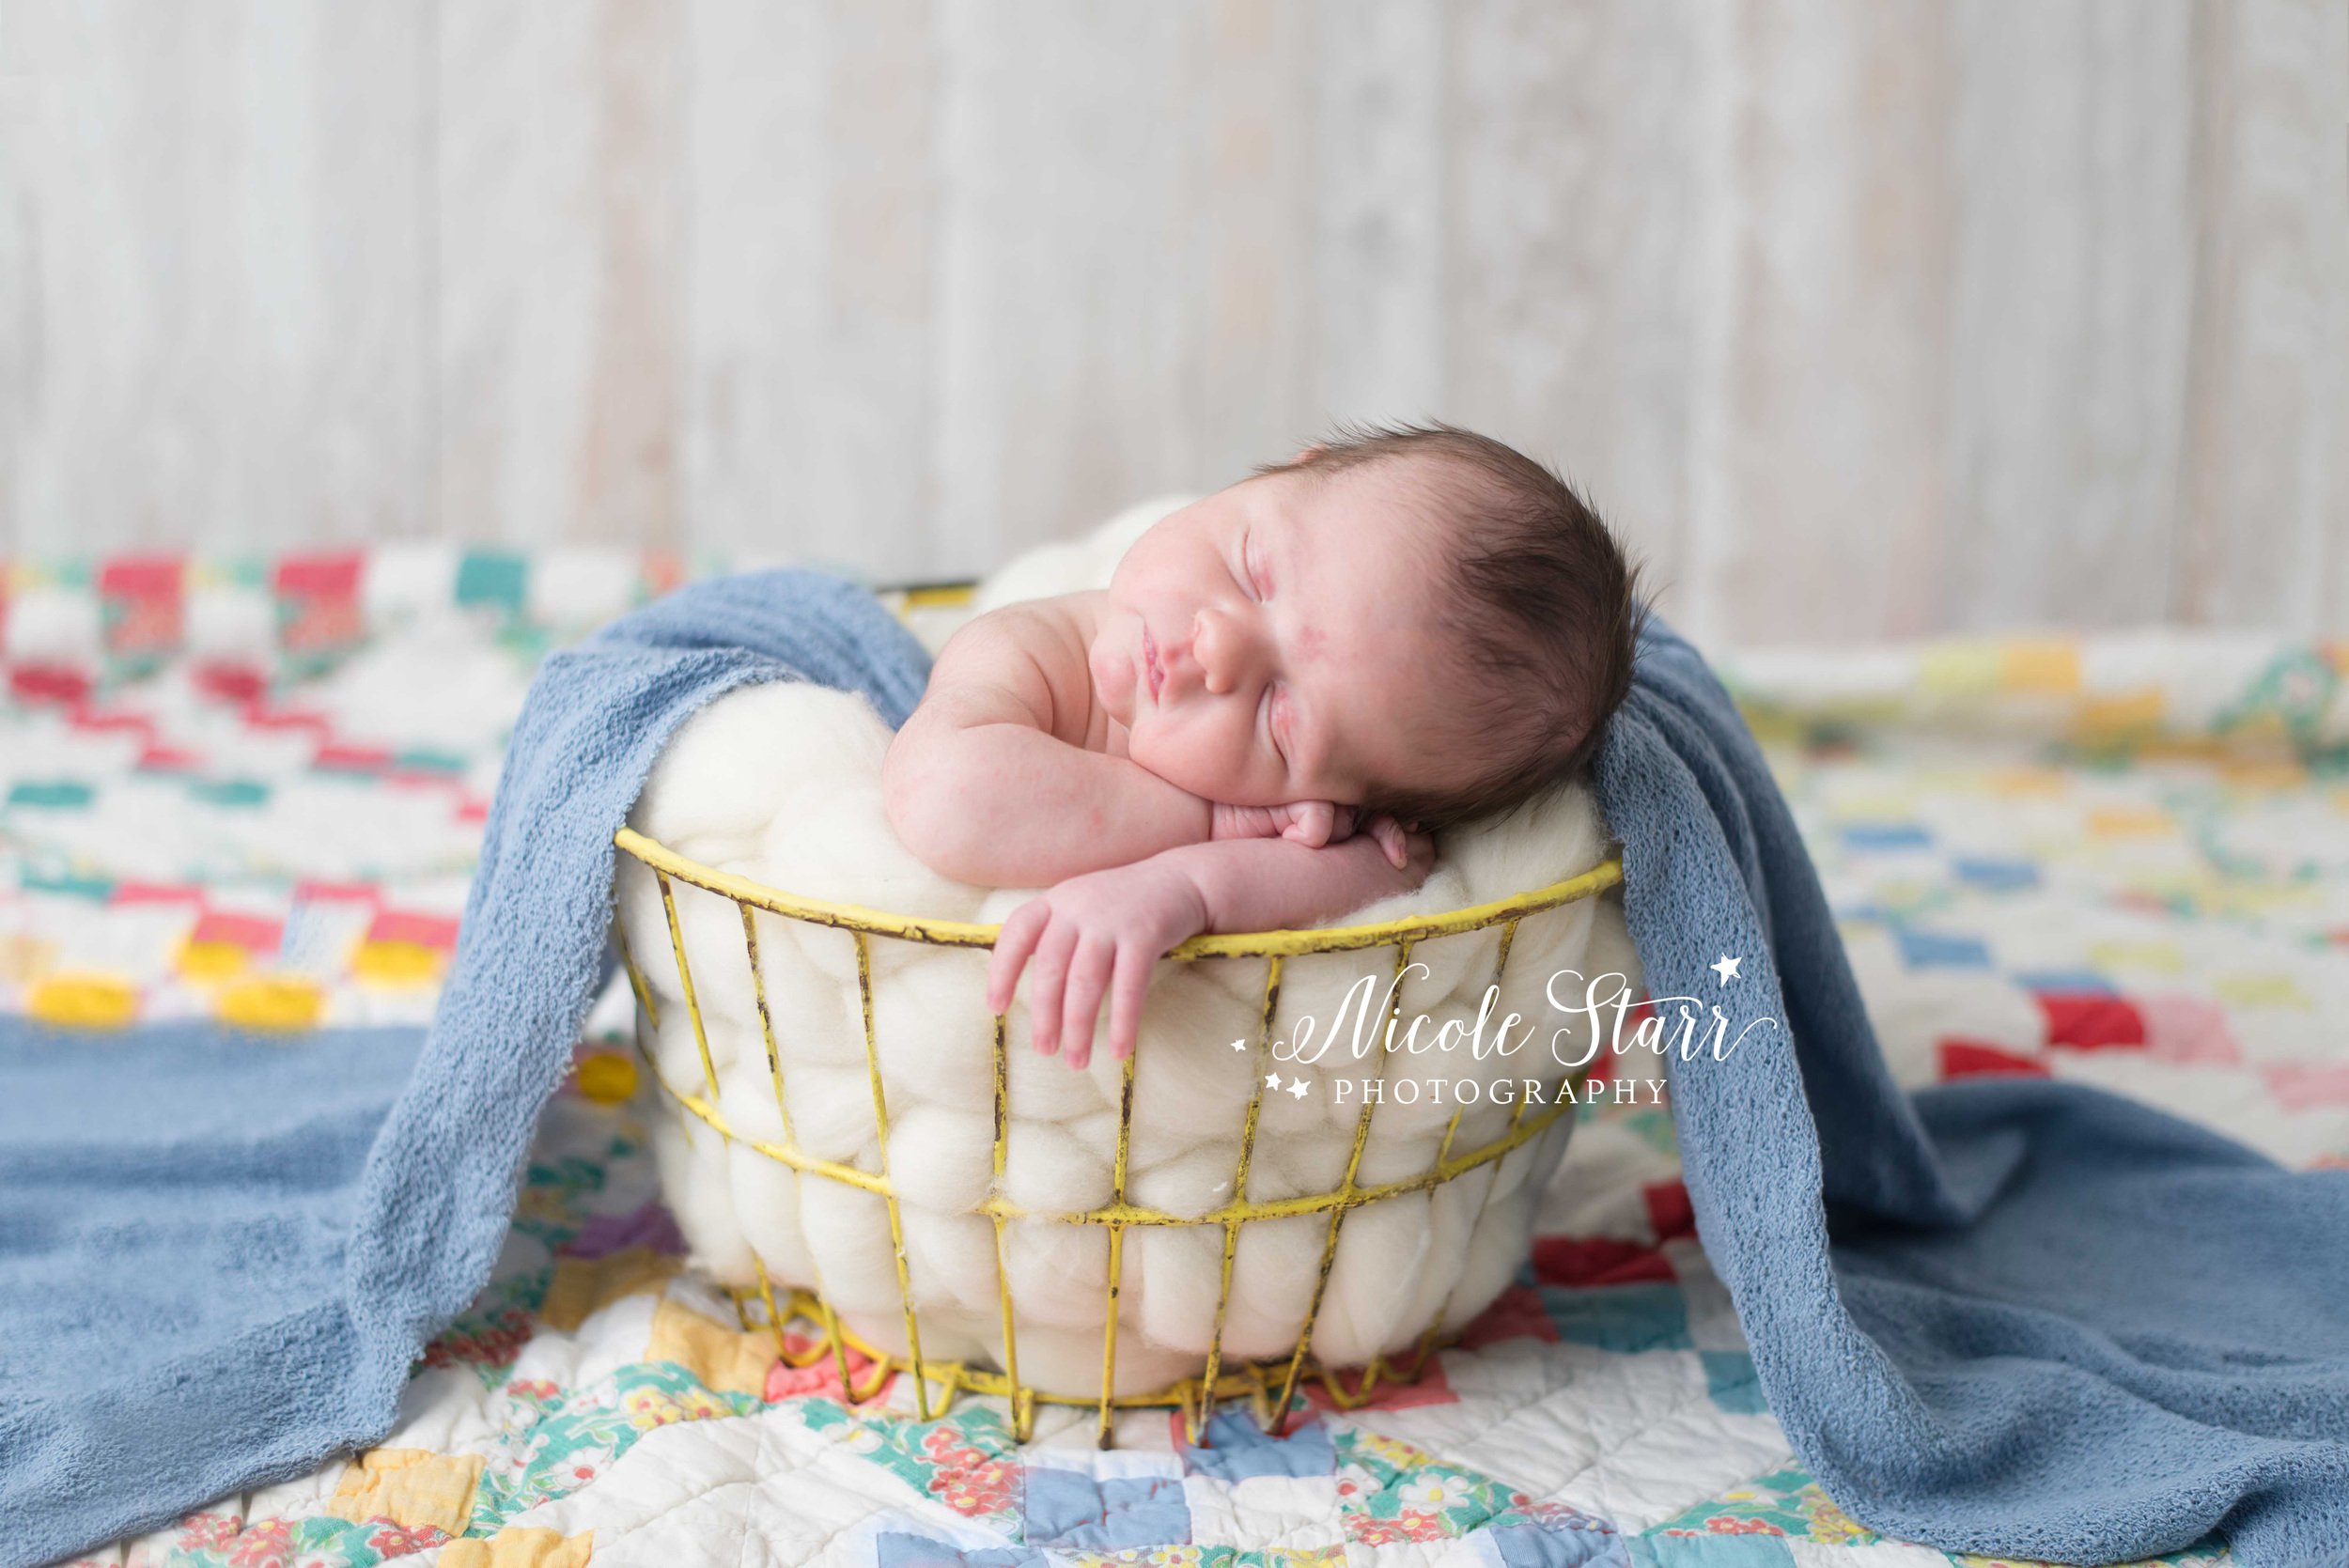 clifton park new york newborn photographer.jpg